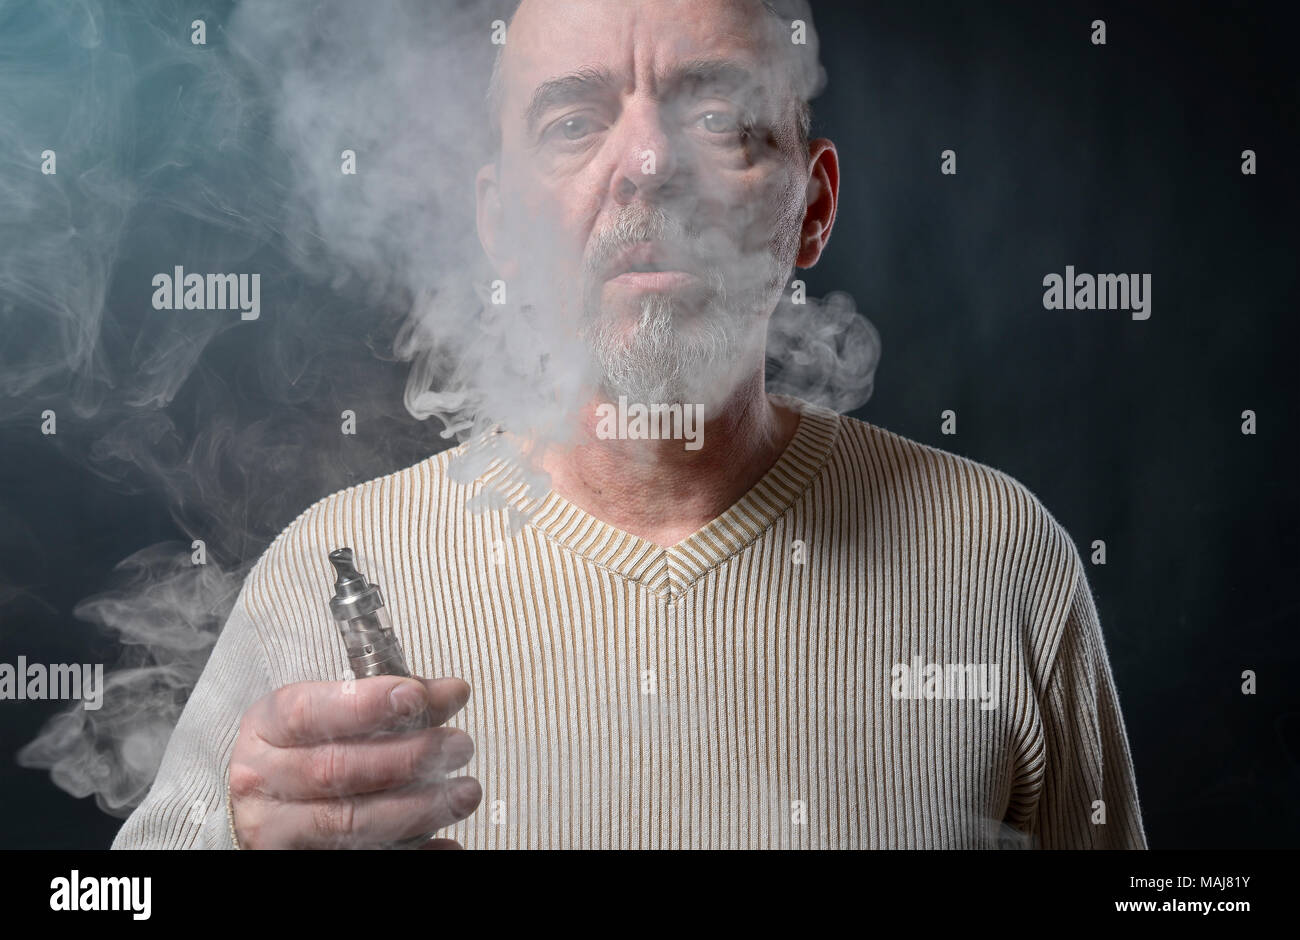 portrait of a man with beard who is vaping Stock Photo